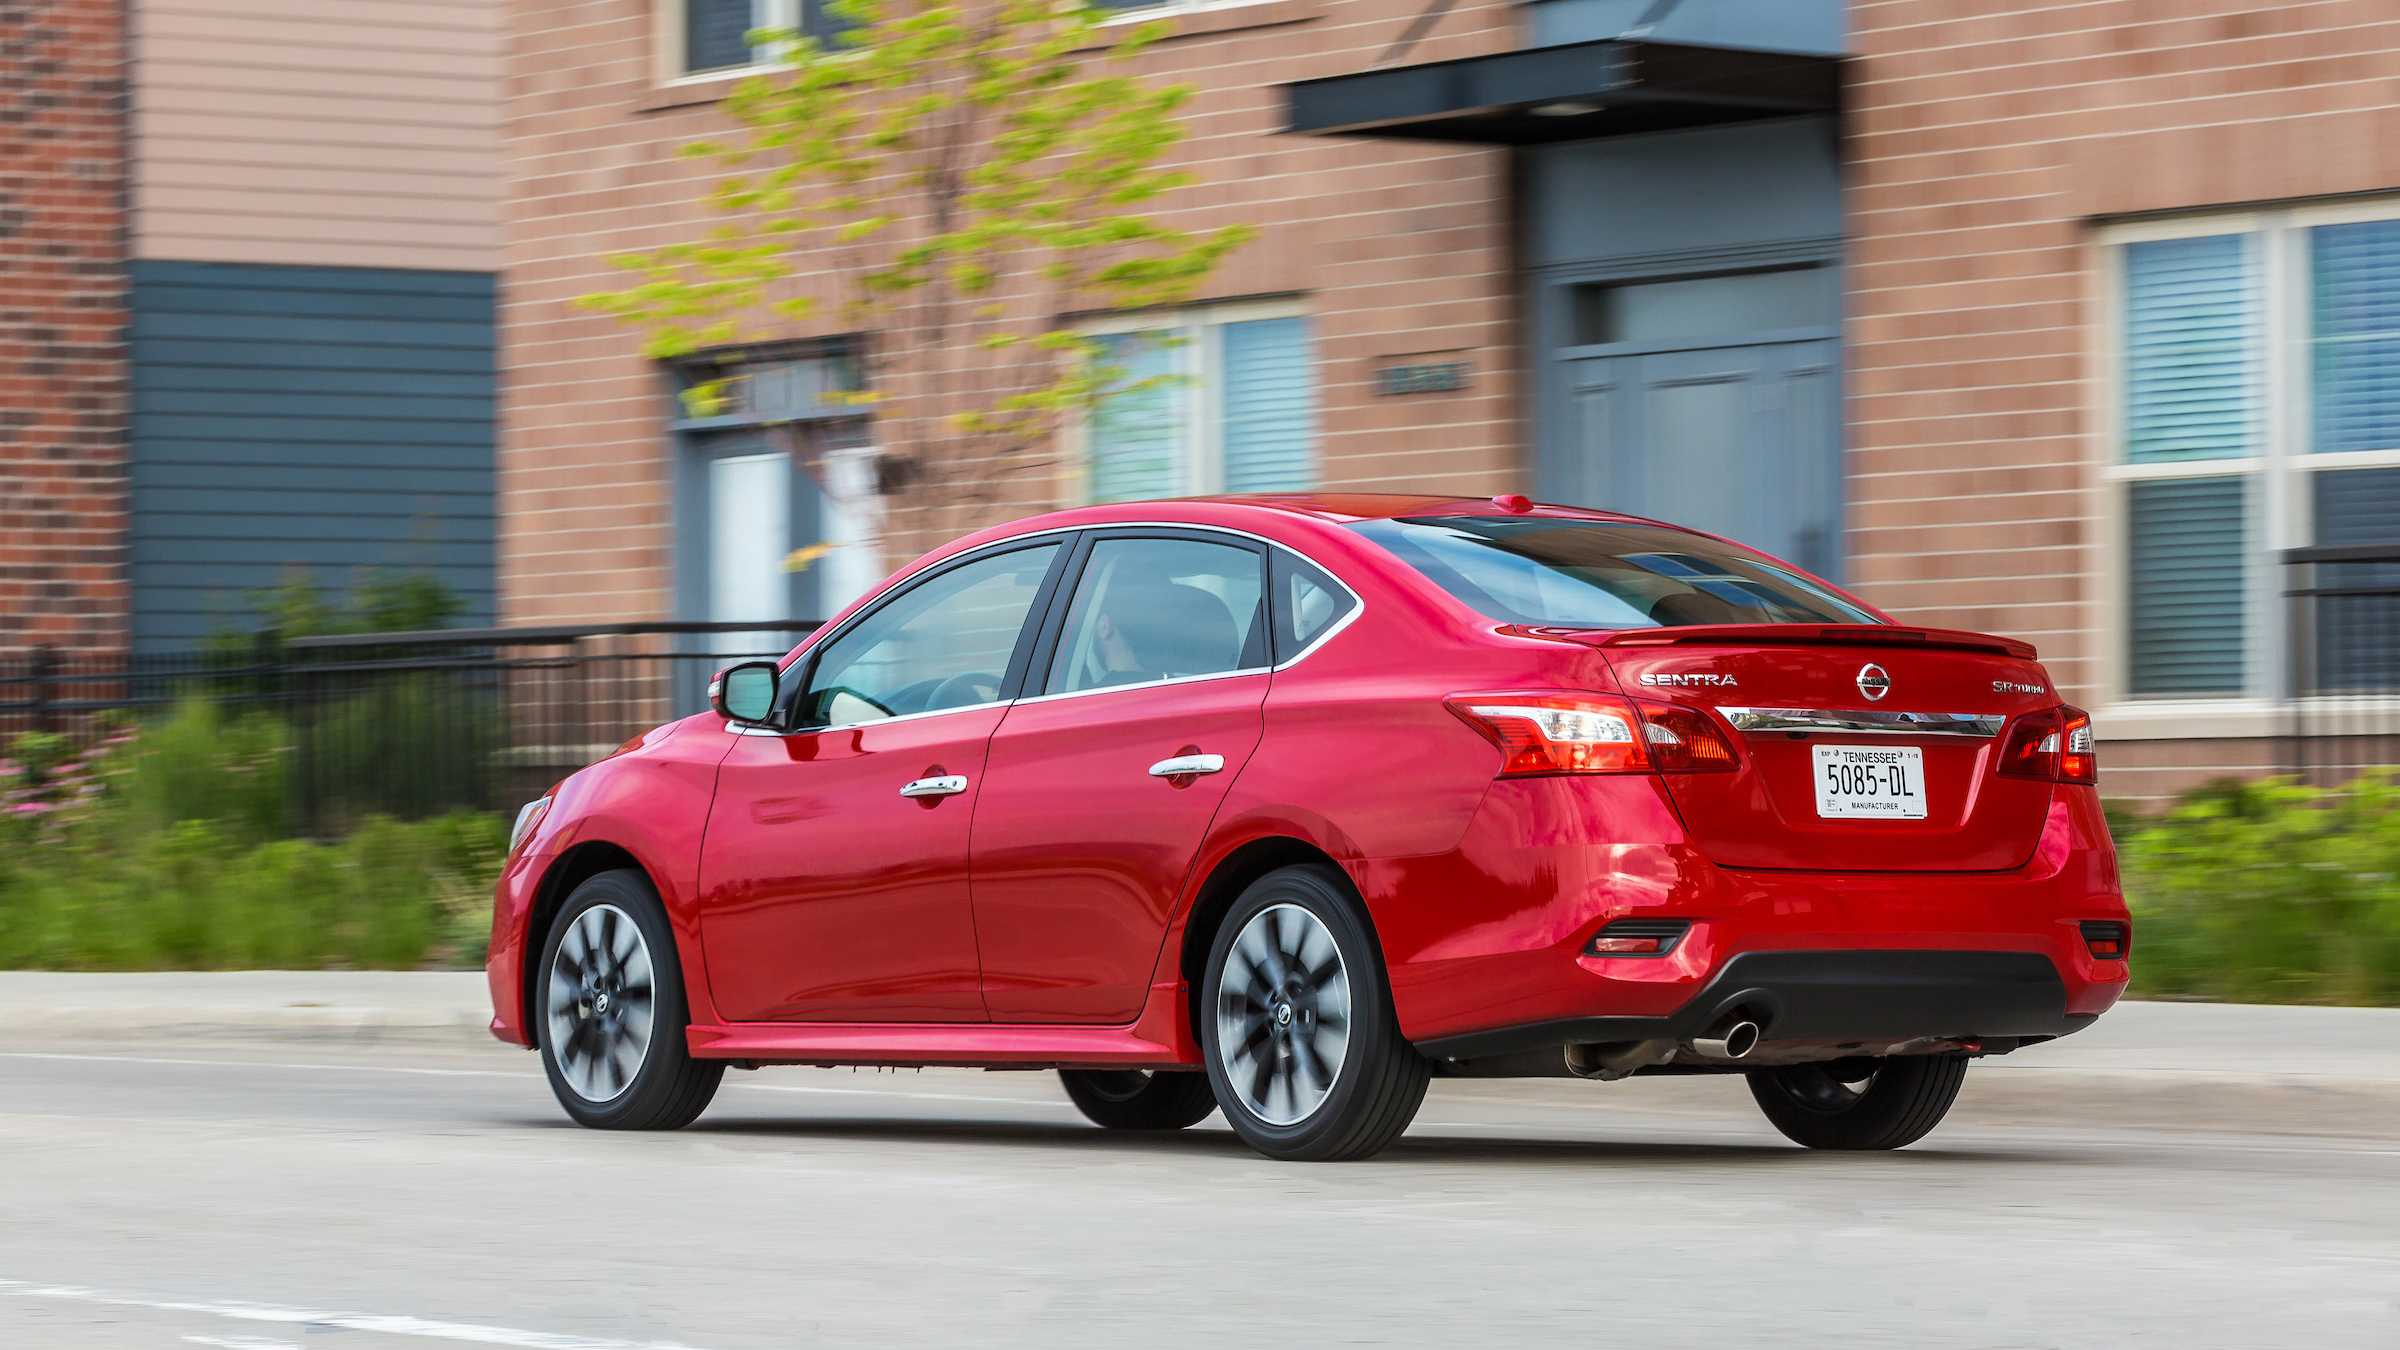 2019 Nissan Sentra More Of The Same The Drive